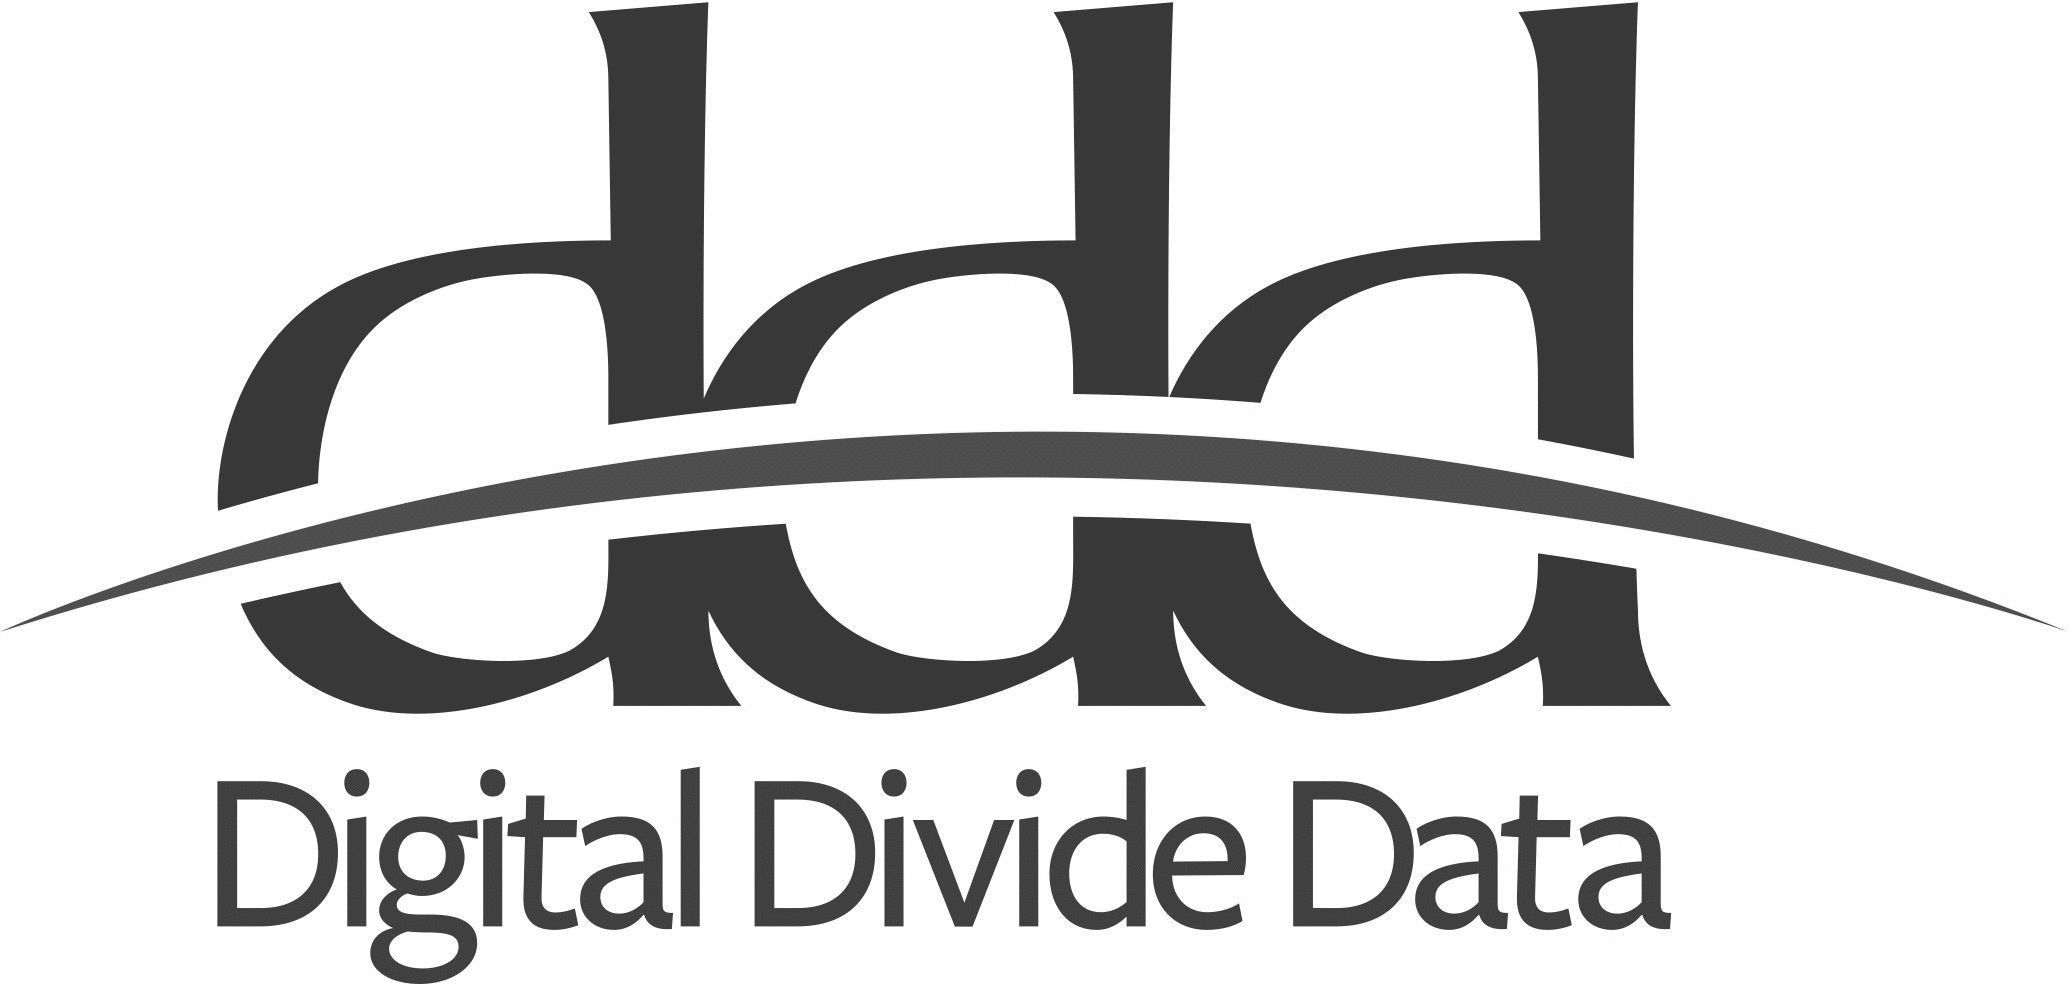 Digital Divide Data